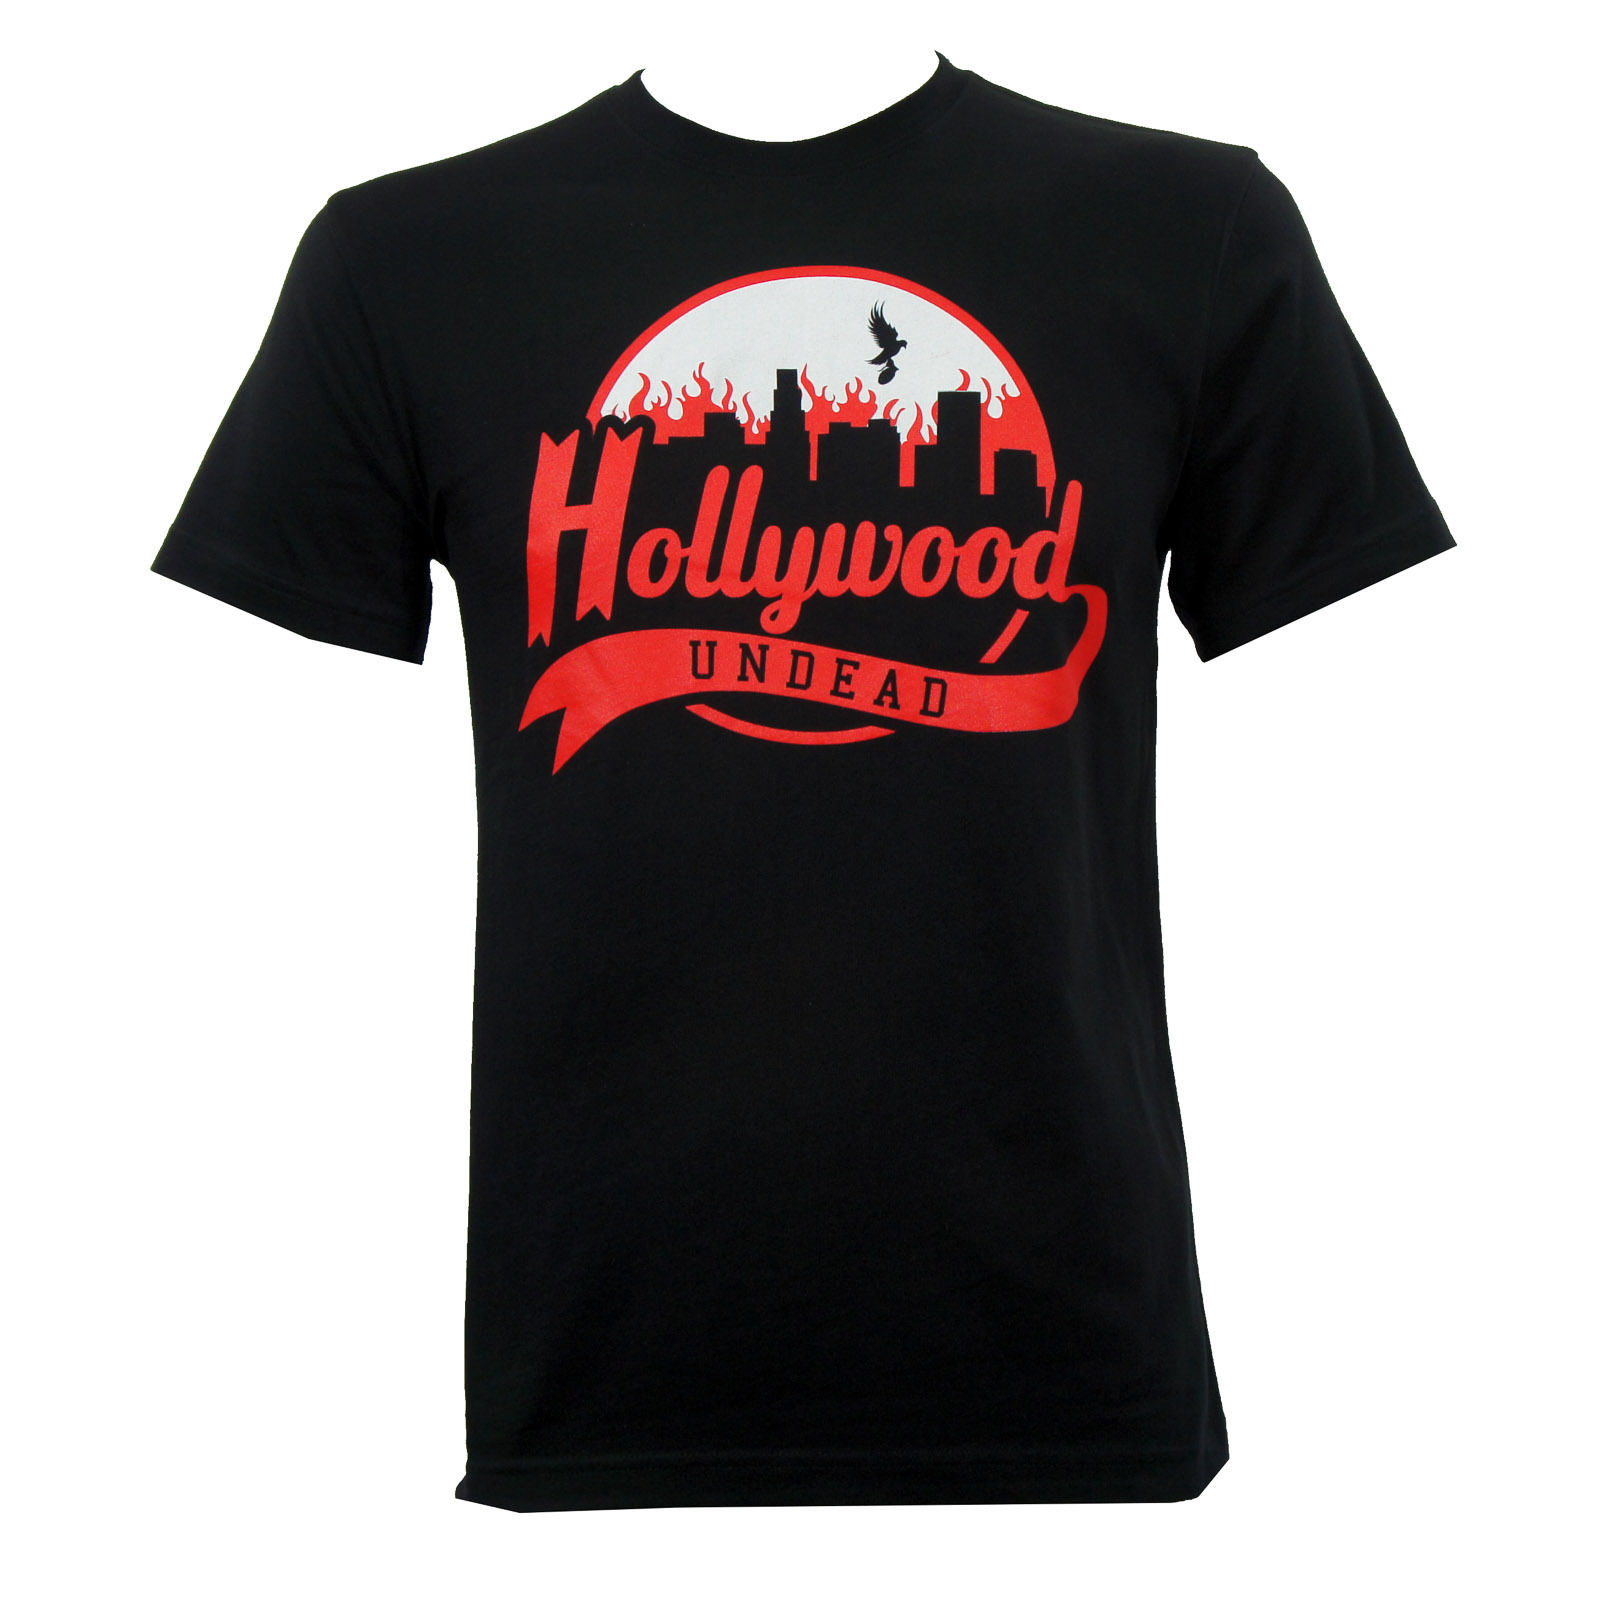 Tee Shirts Hipster O Neck Authentic Hollywood Undead Band Burning City Logo Slim Fit T Shirt S 2Xl New